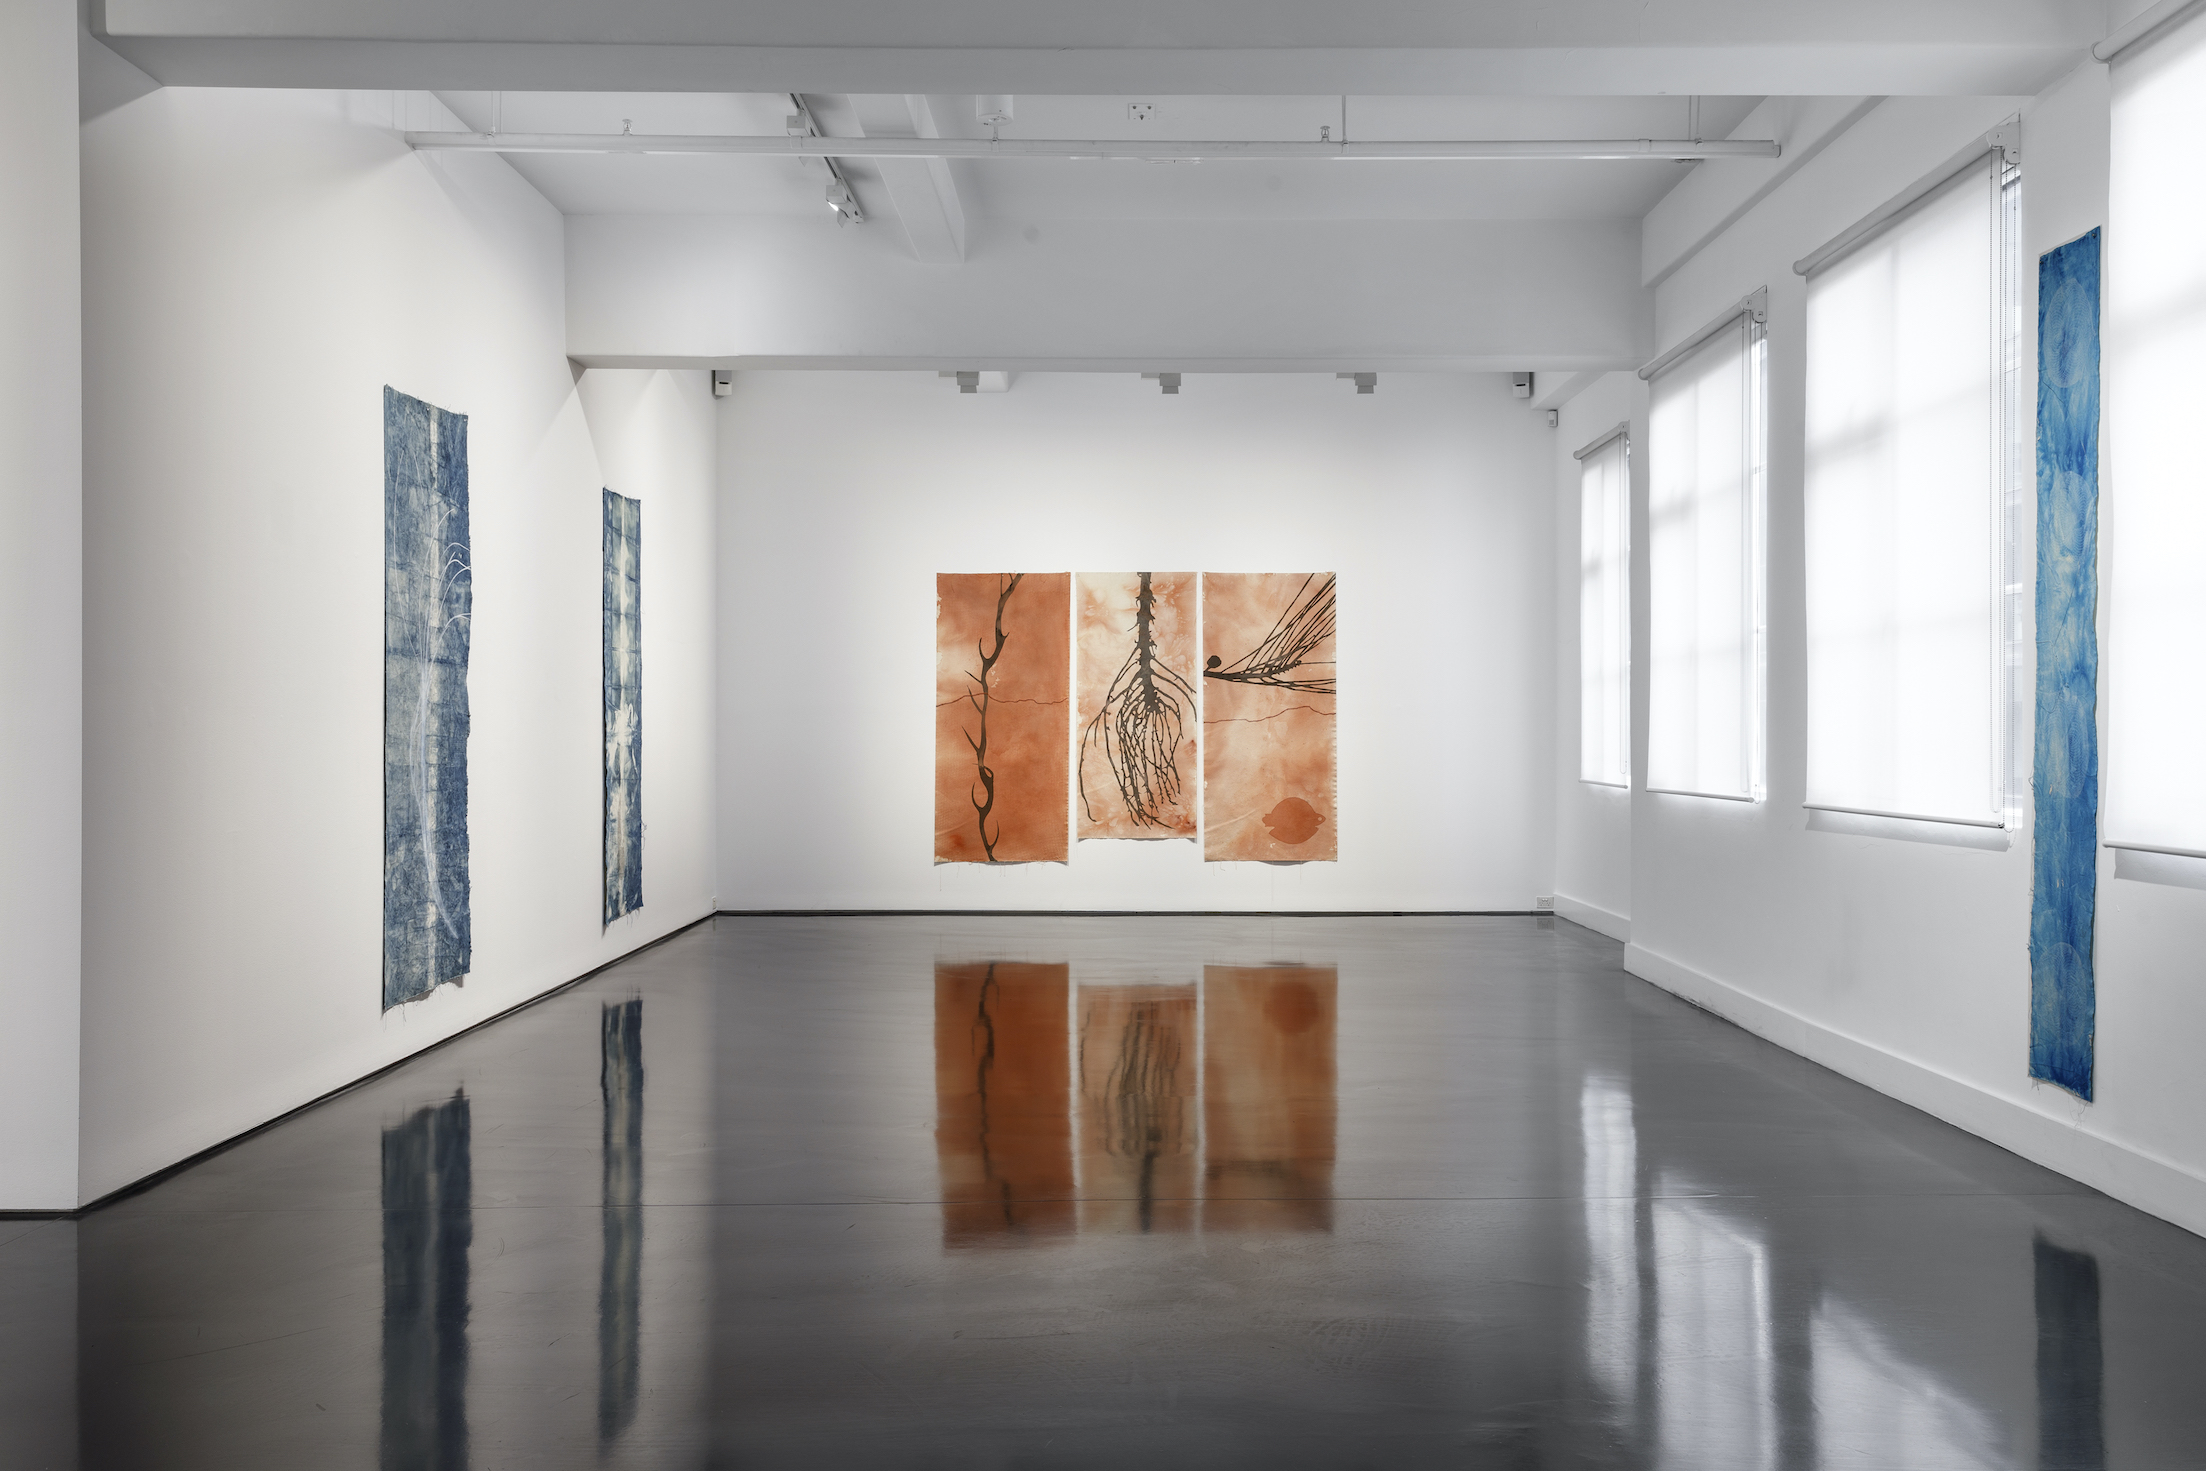 Installation view 5, memory scars, dreams and gardens, 2020, Courtesy of the artist and Tolarno Galleries